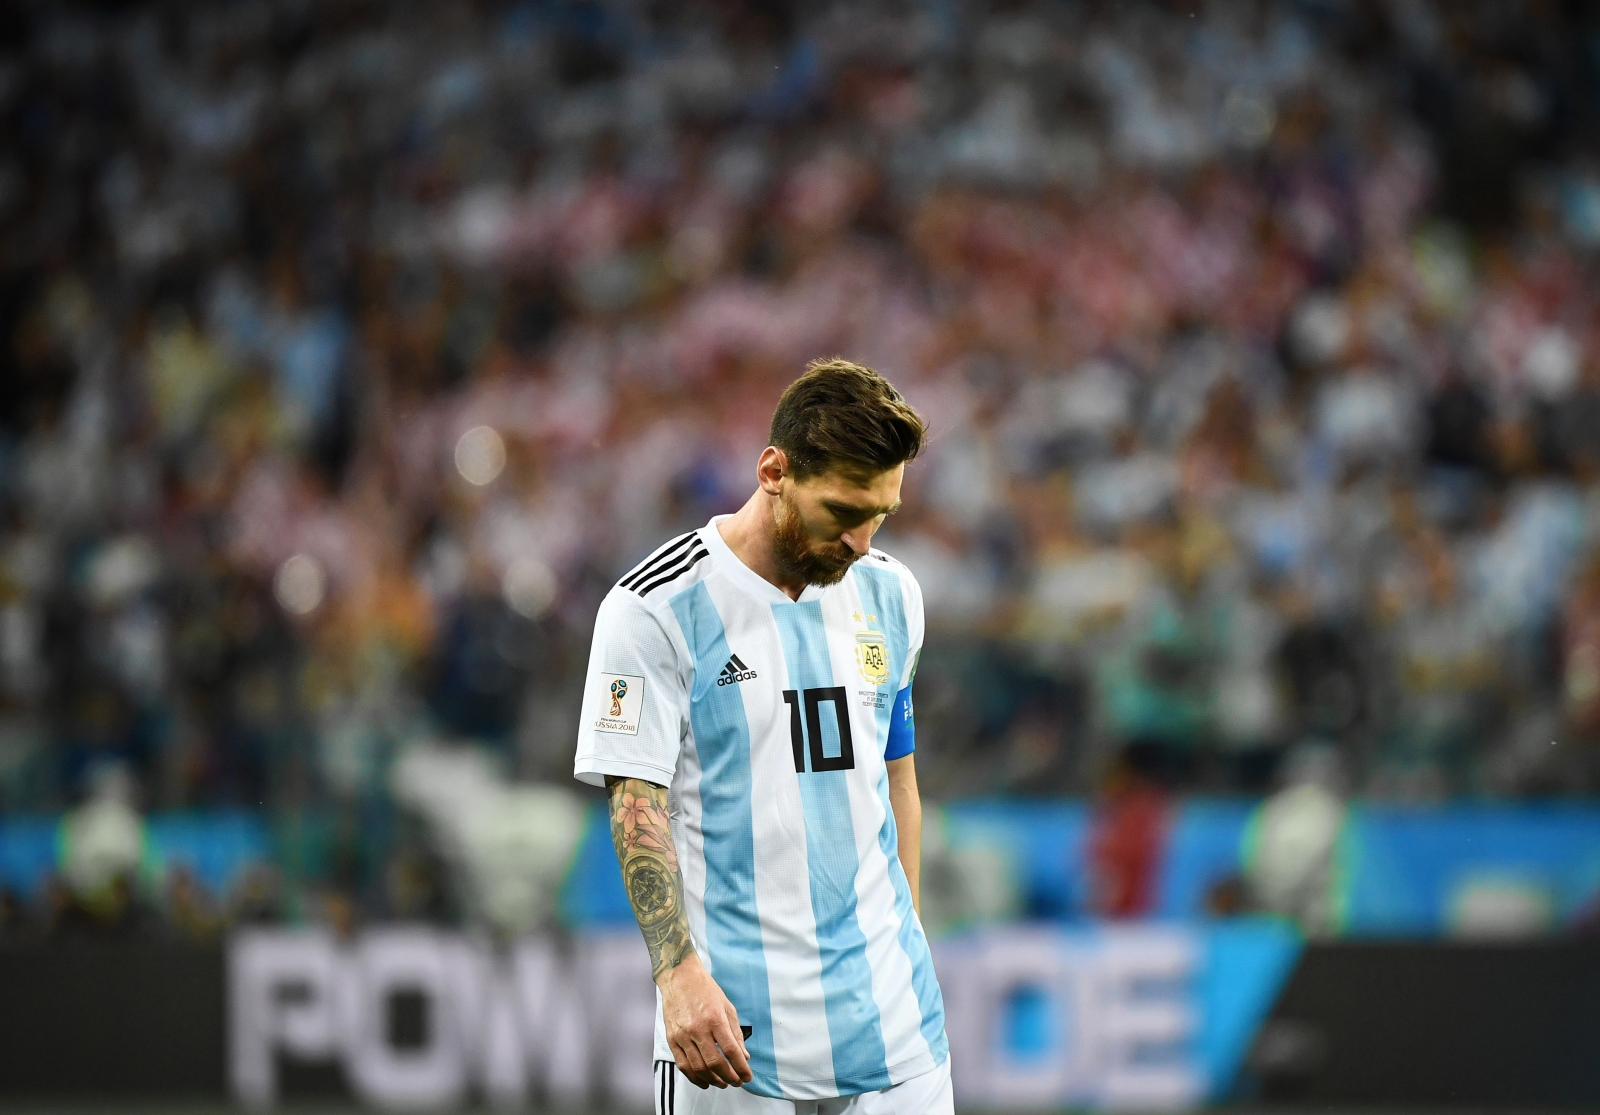 c65103c42 There have been few images more powerful at this summer s World Cup than  that of Lionel Messi